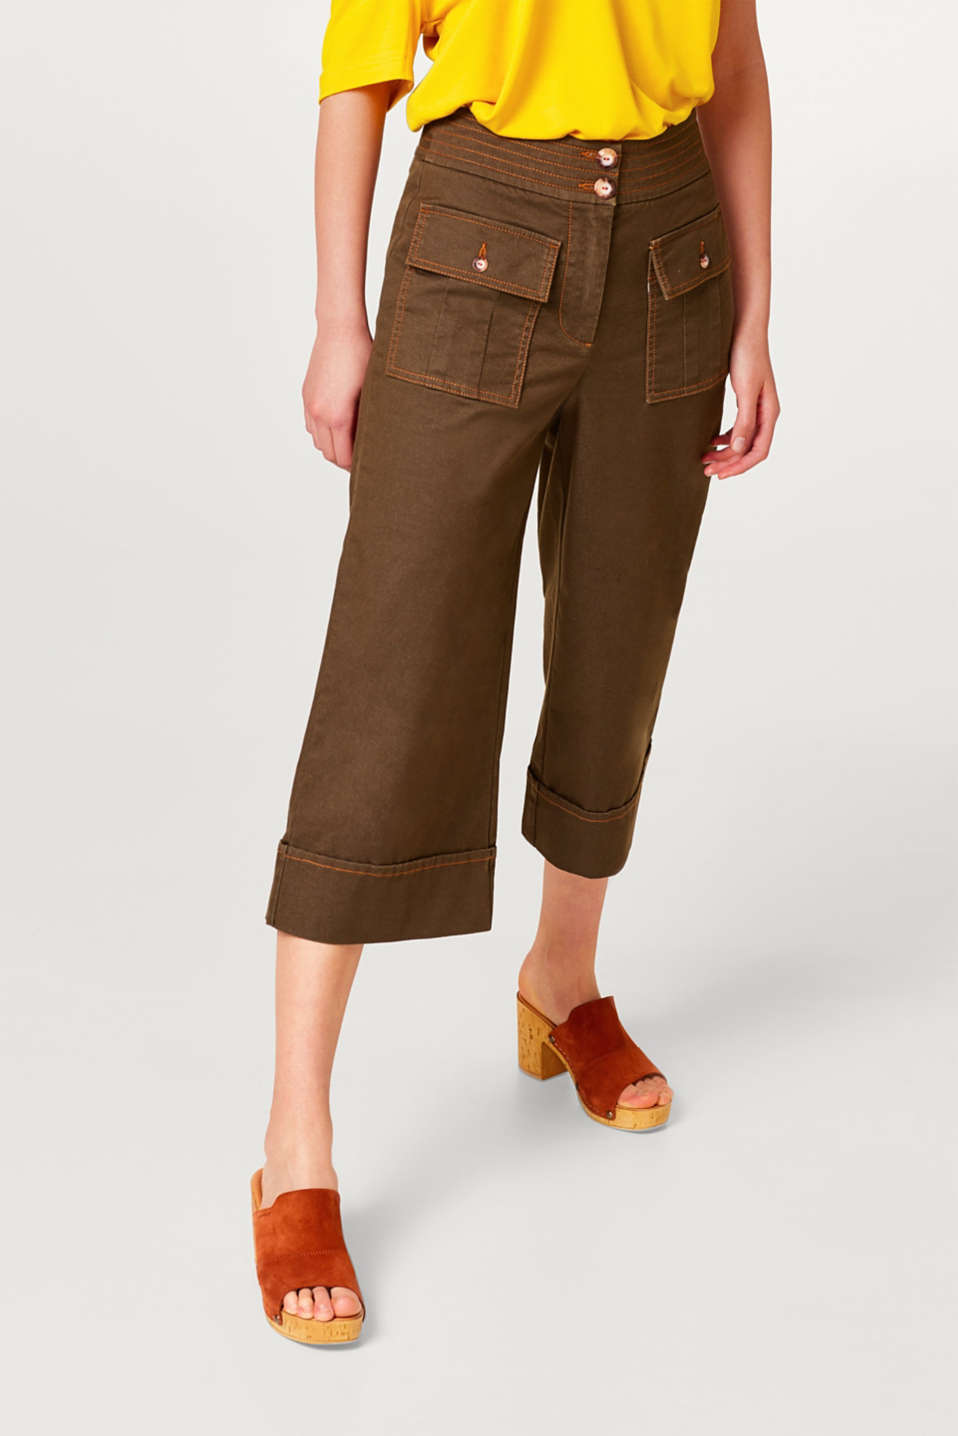 Esprit - Wide, comfy and stretchy culottes